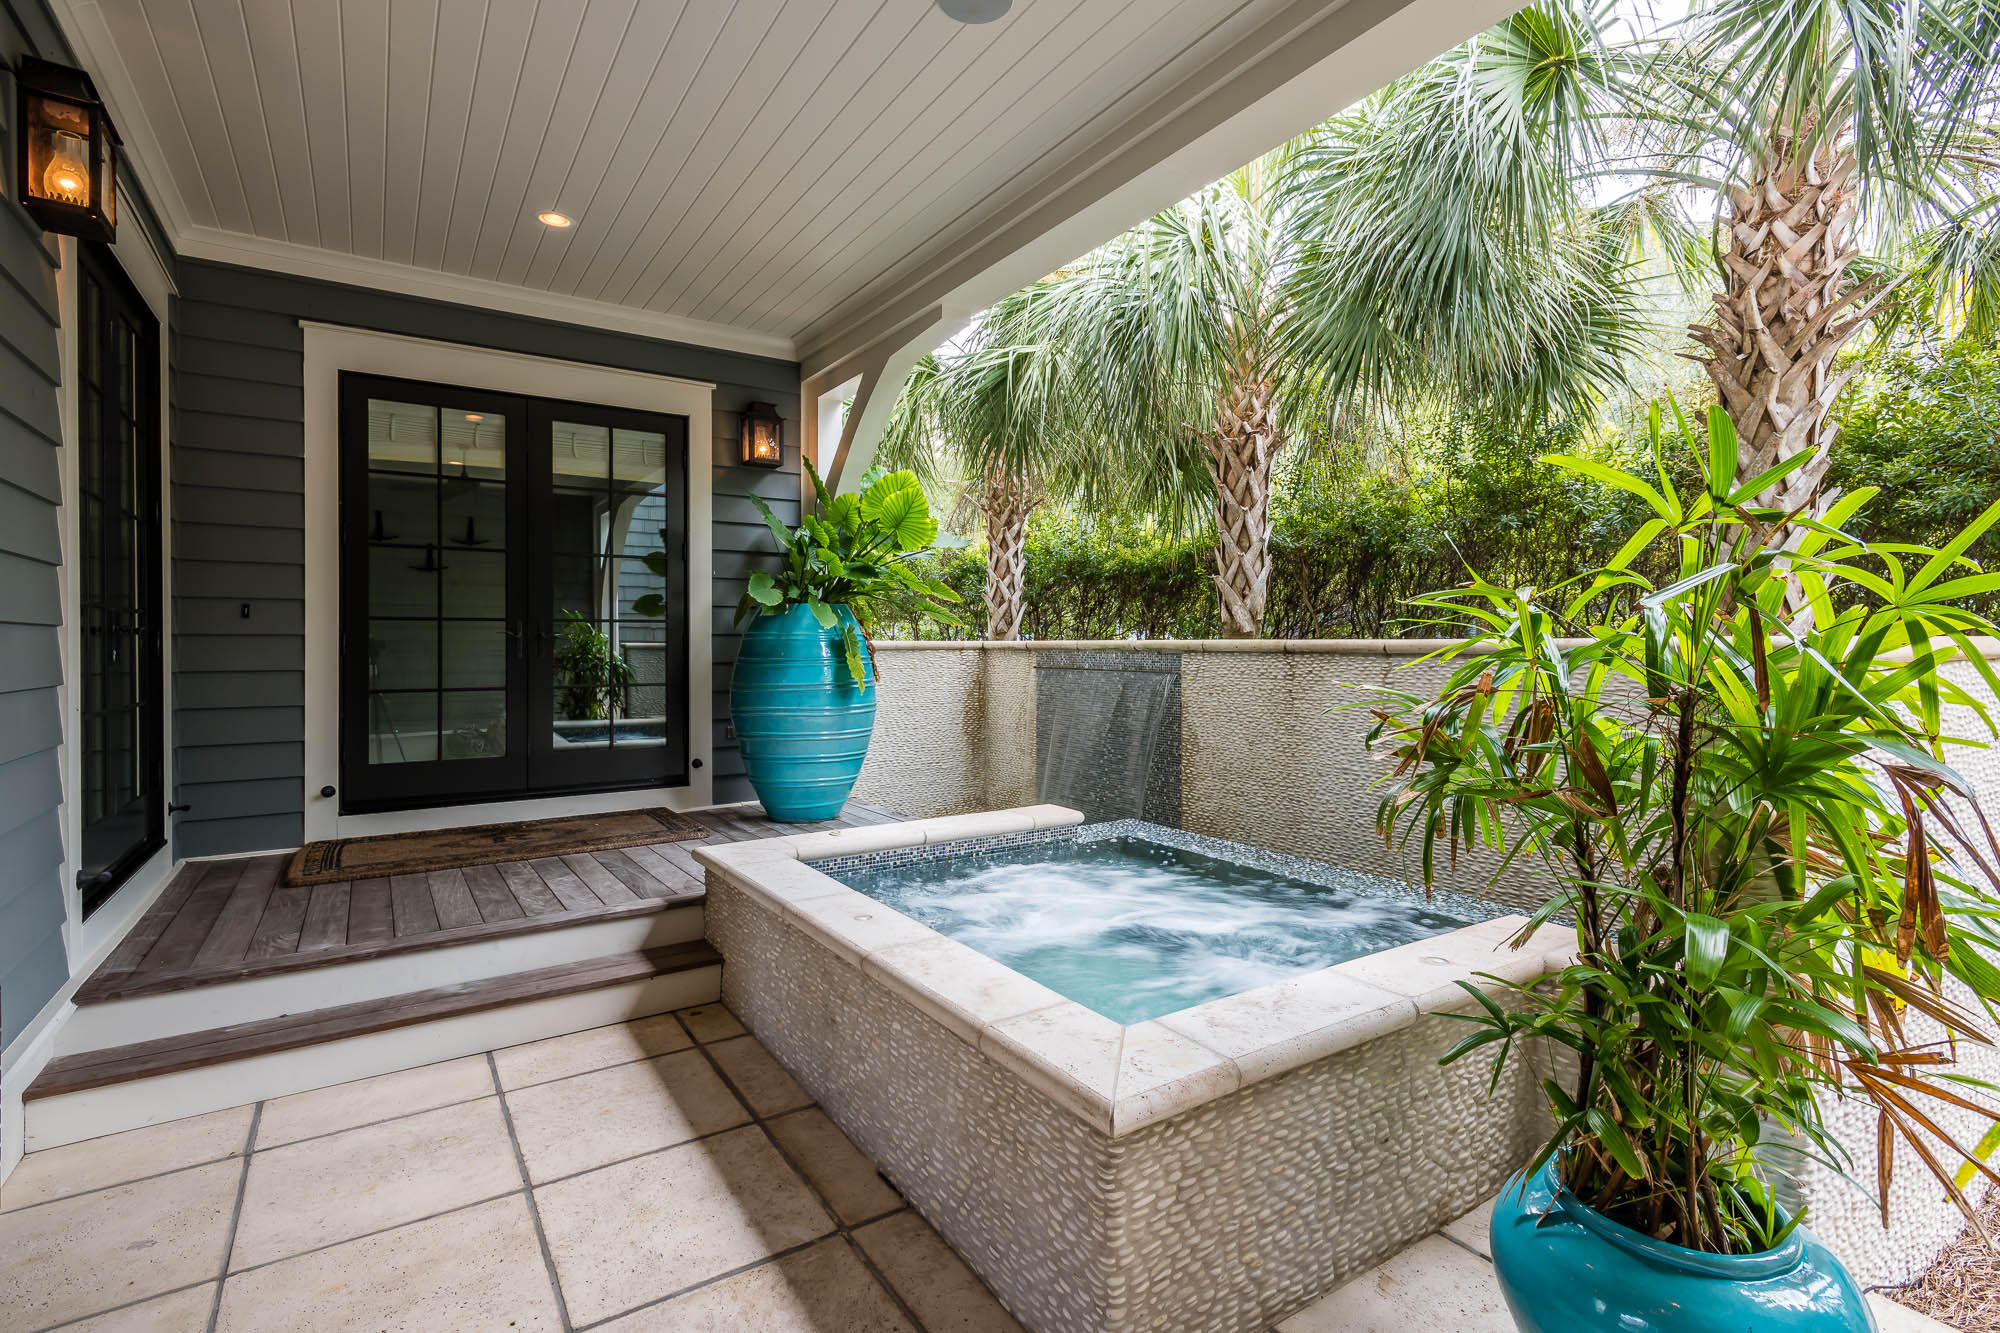 72 Founders,Watersound,Florida 32461,6 Bedrooms Bedrooms,6 BathroomsBathrooms,Detached single family,Founders,20131126143817002353000000